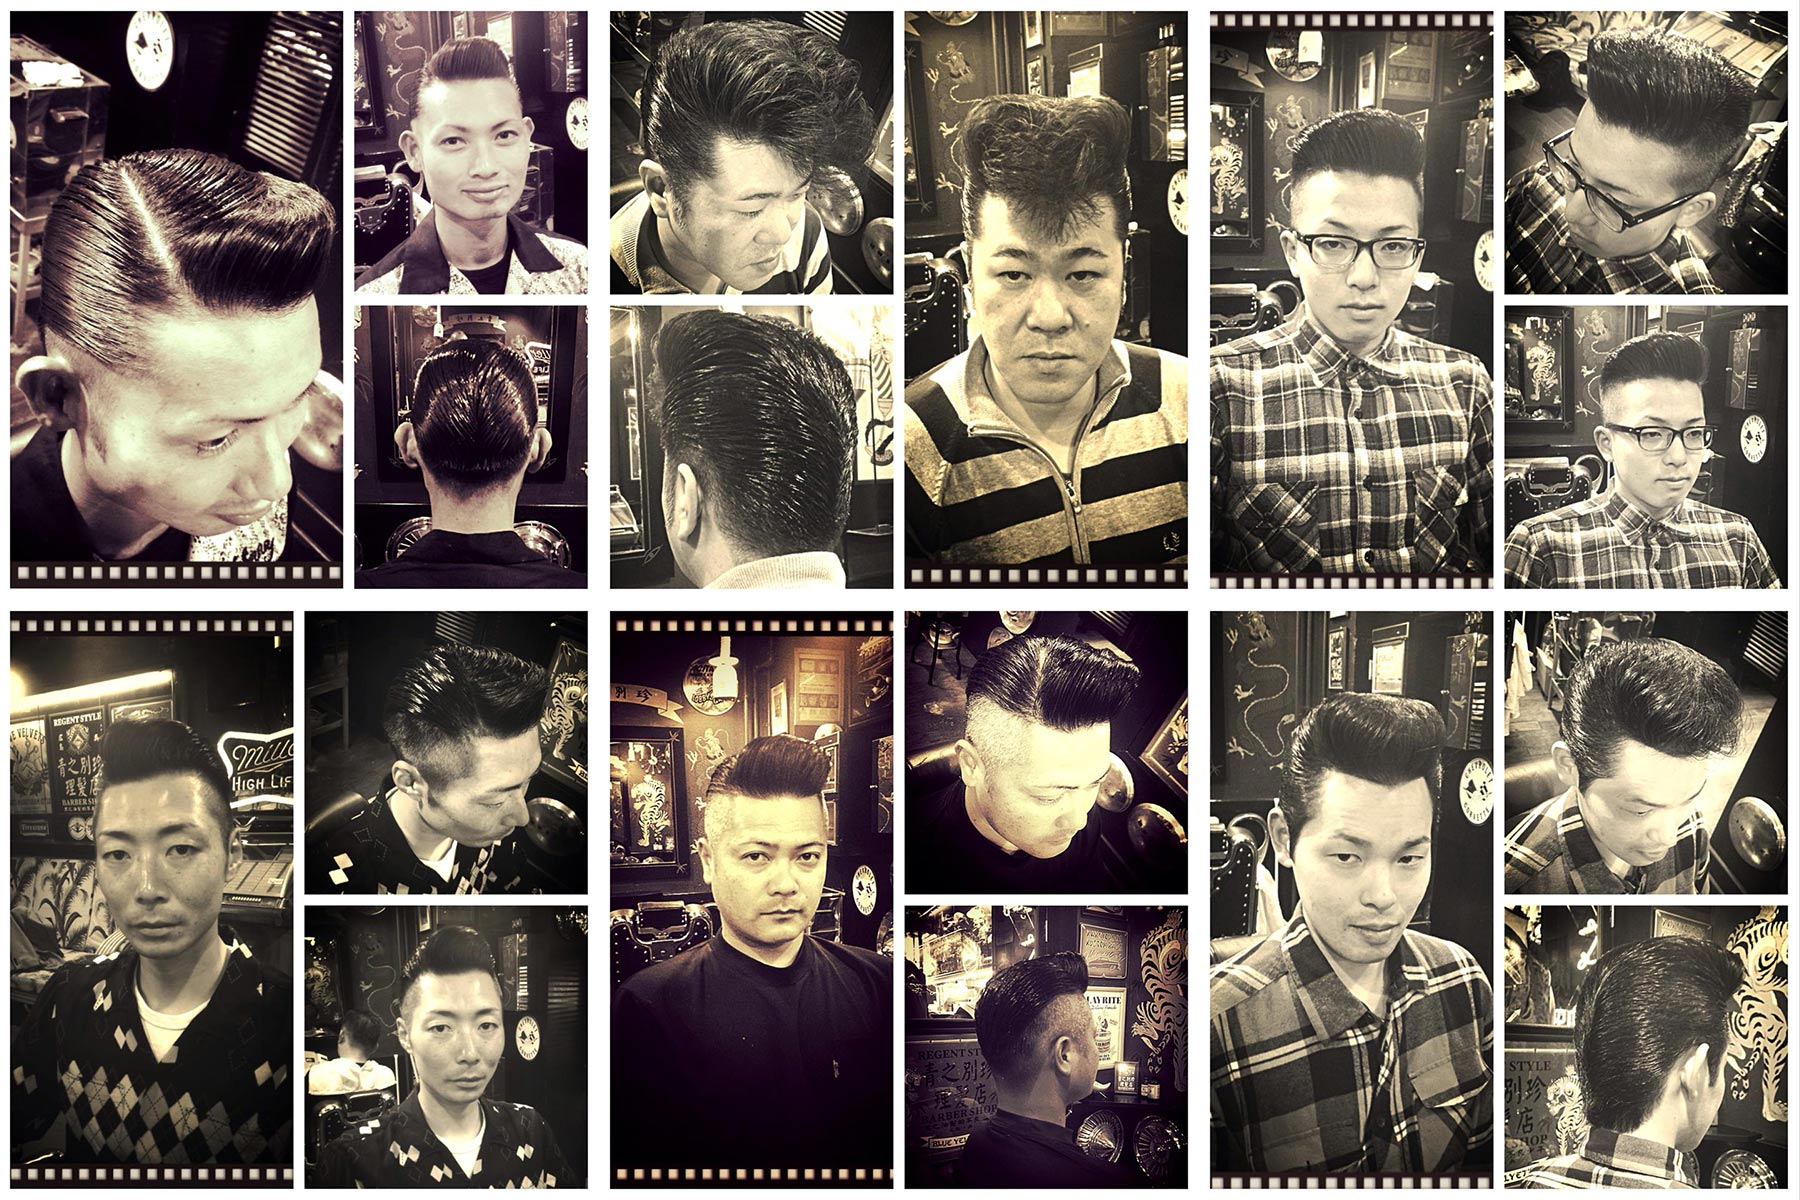 B&W portraits of Japanese men in perfectly groomed 1950s rockabilly pompadours from Blue Velvet's barber shop. Ponyboy magazine New York.